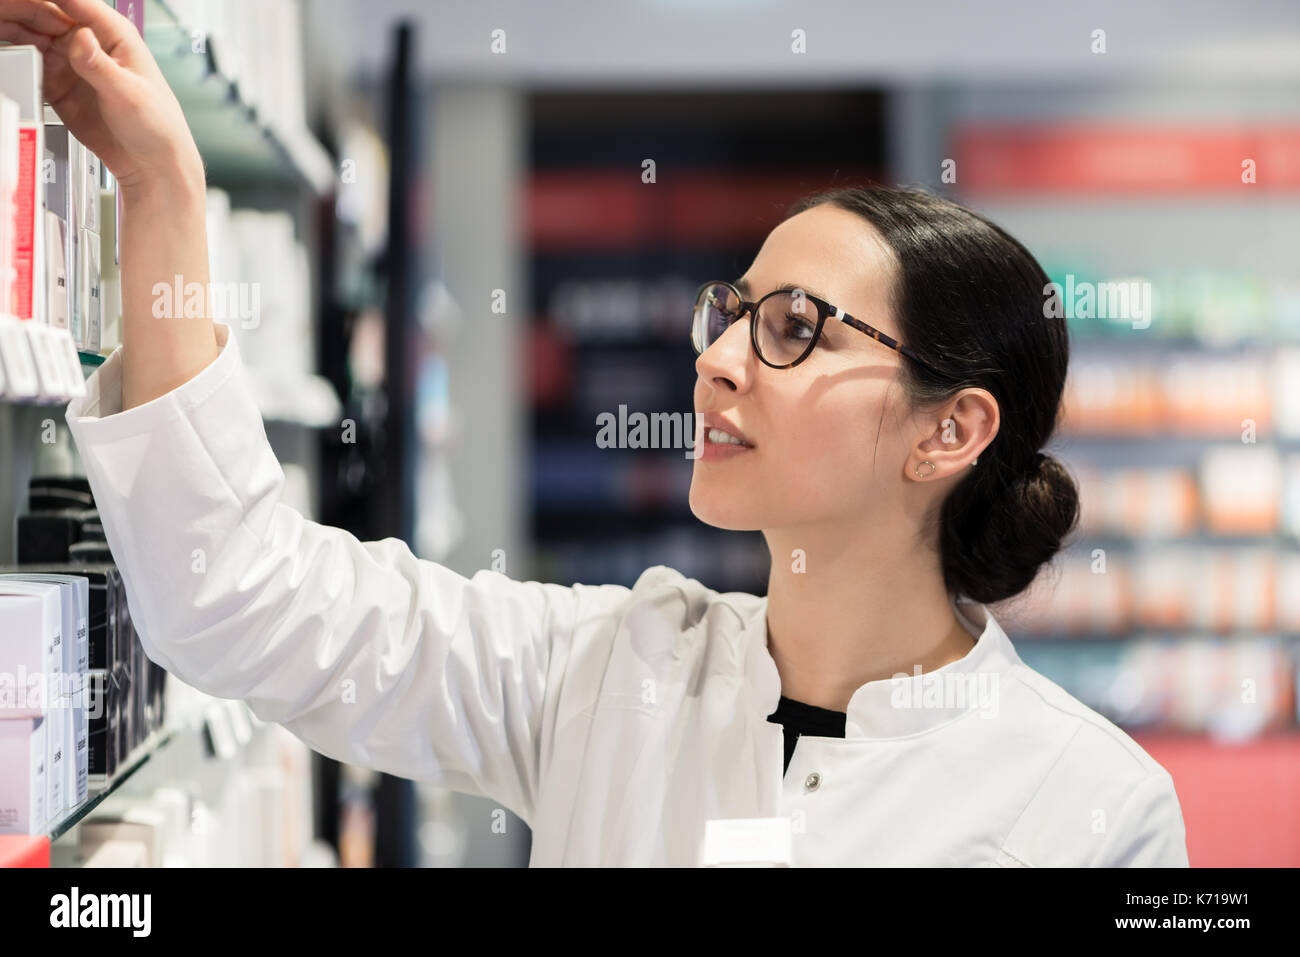 pharmacist standing in front of various products thinking to mak - Stock Image